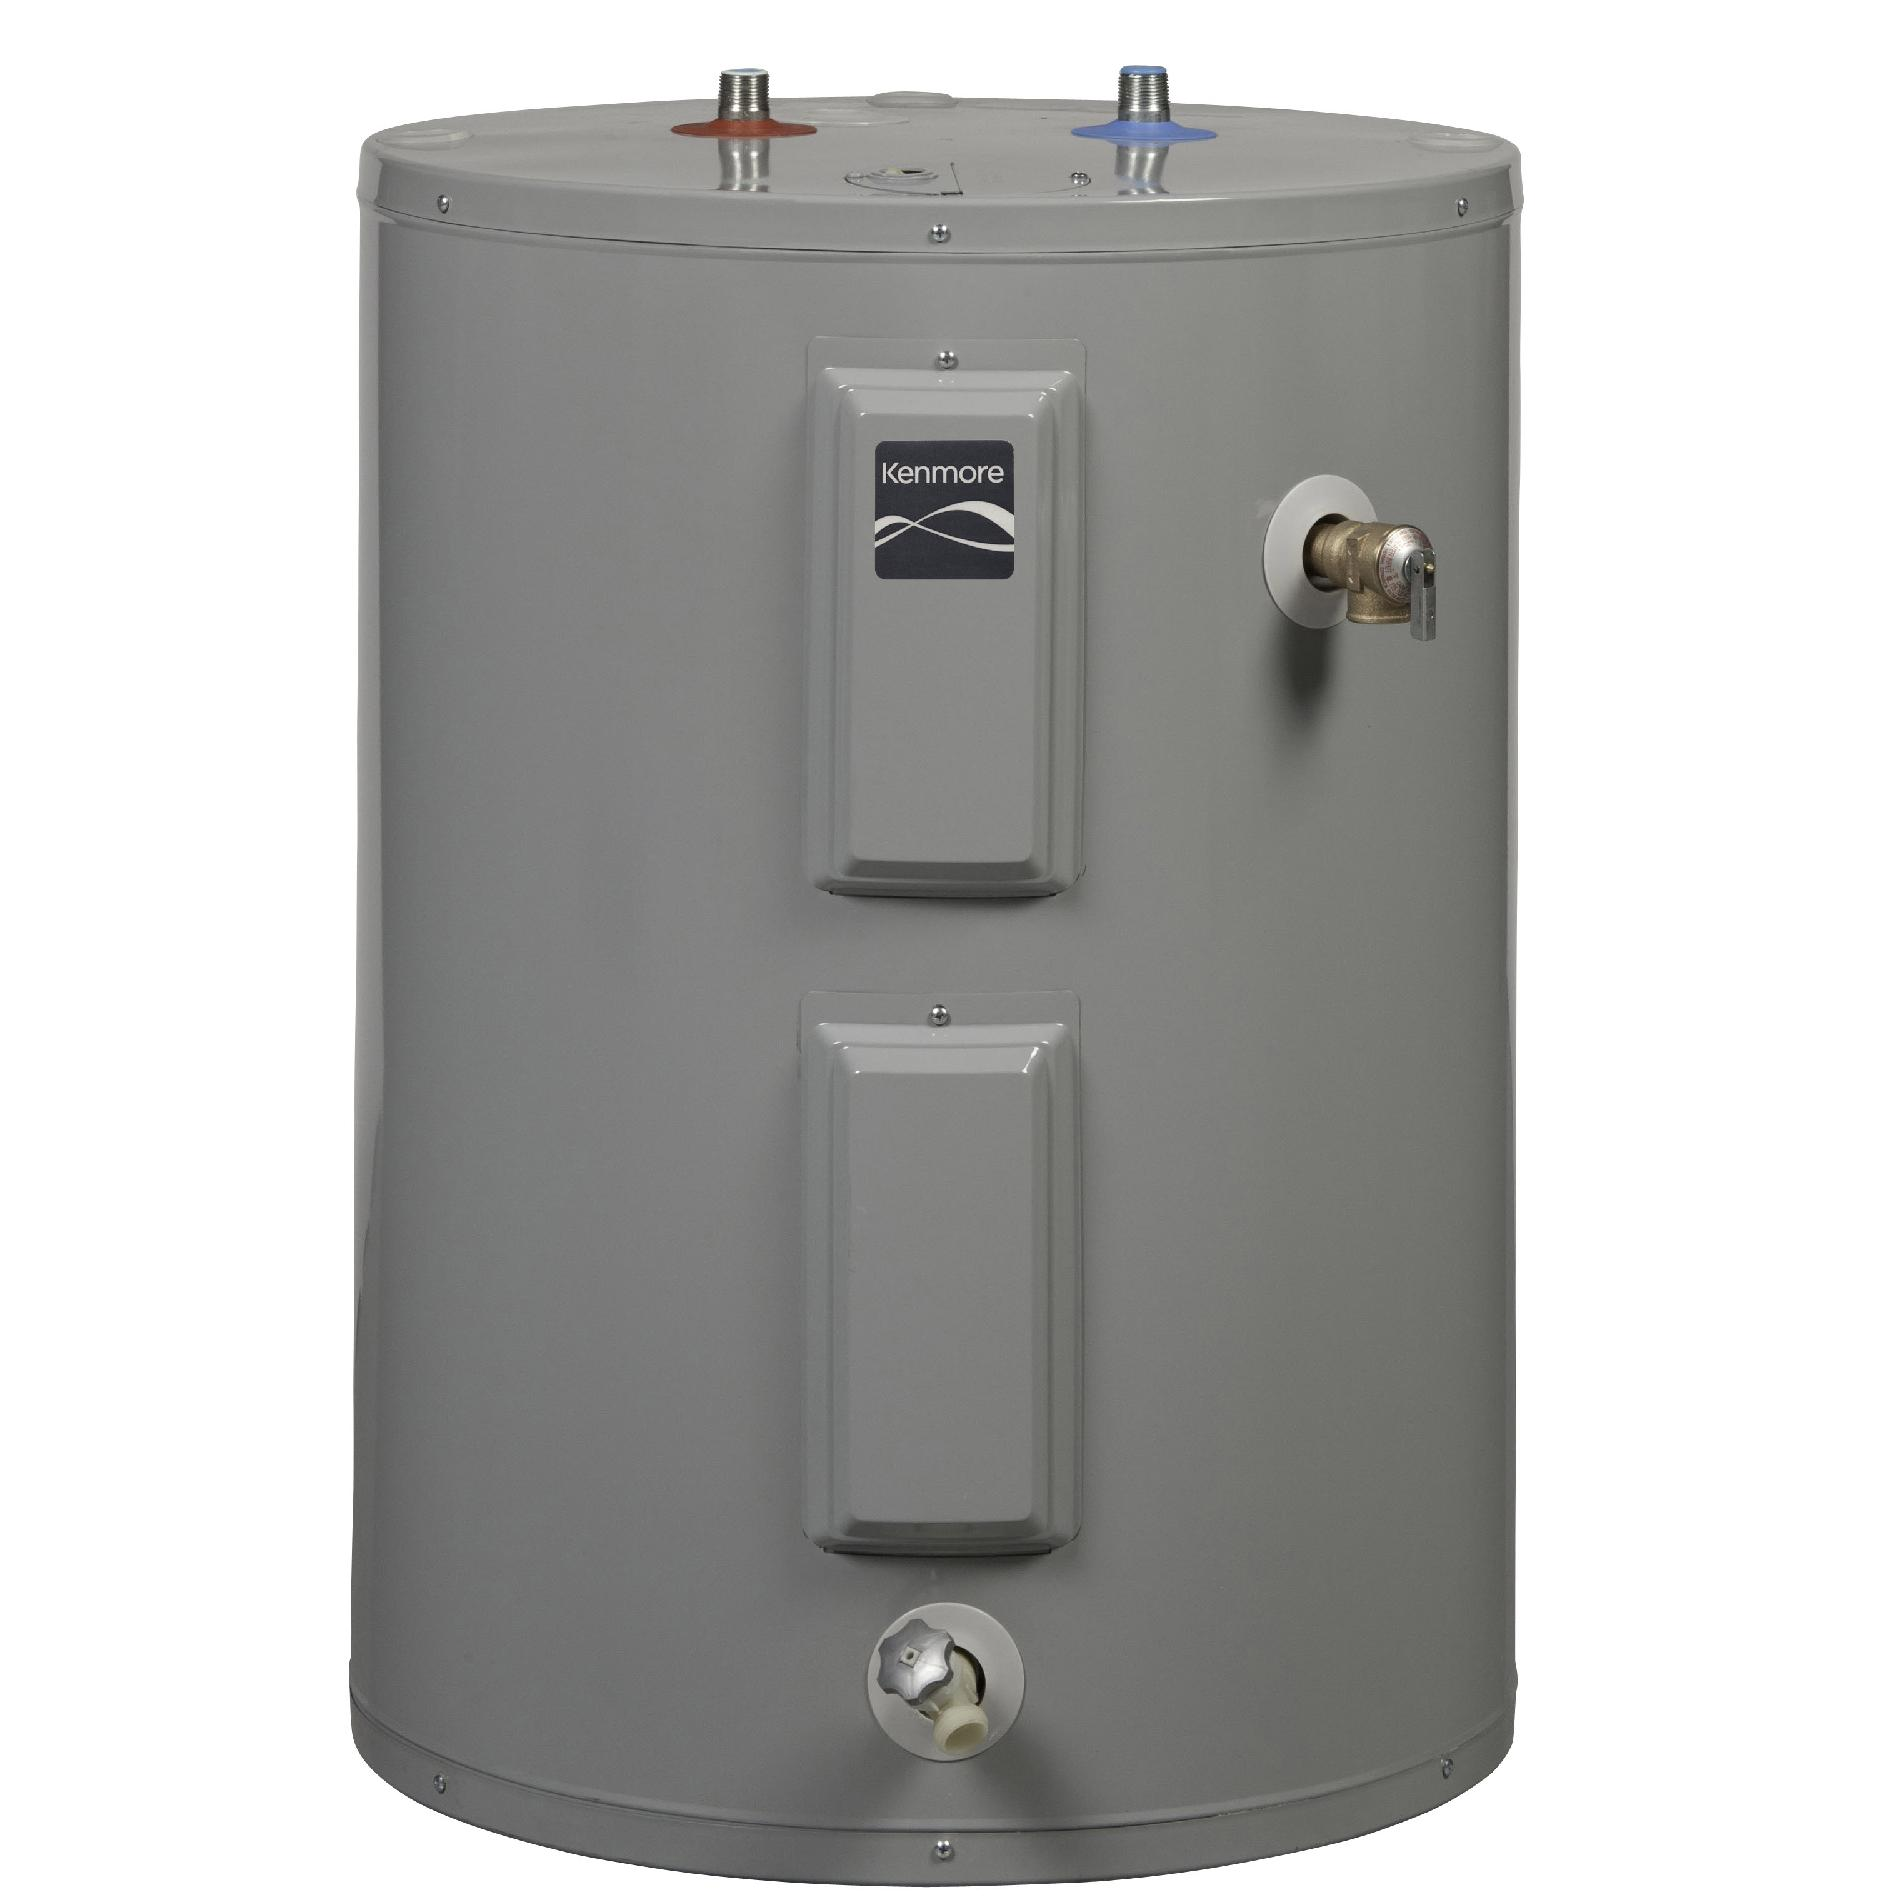 Kenmore 38 gal. Short 6-Year Electric Water Heater - Limited Availability